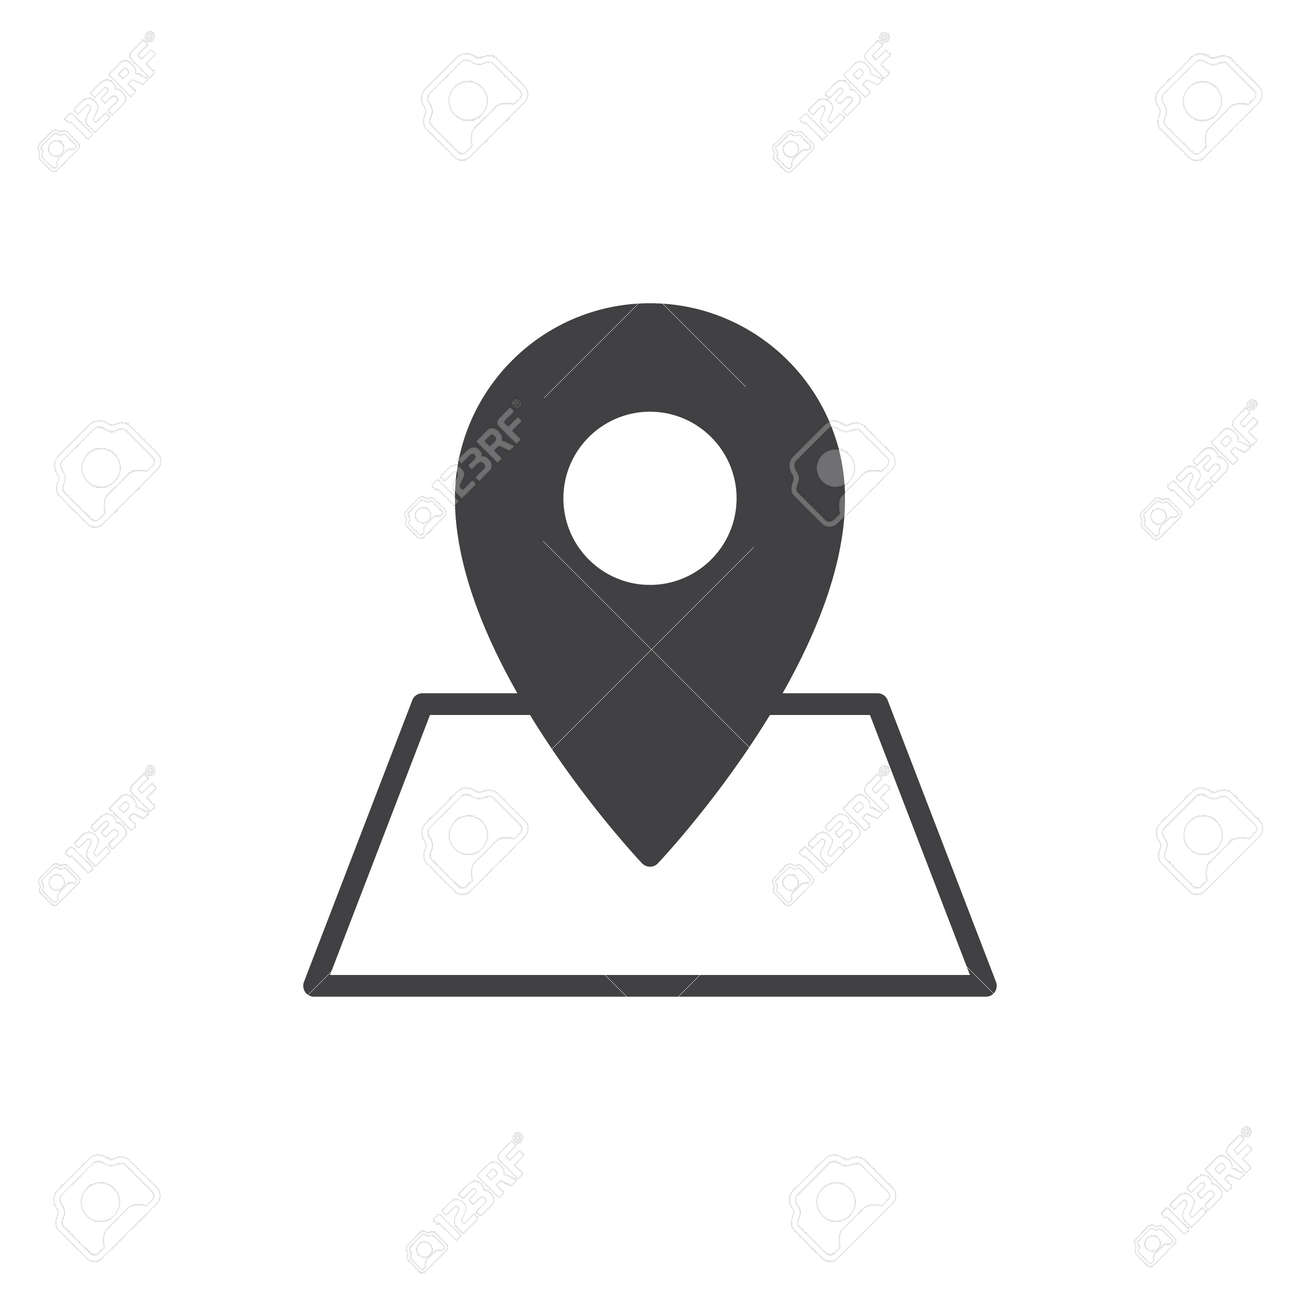 Location on map icon vector, filled flat sign, solid pictogram